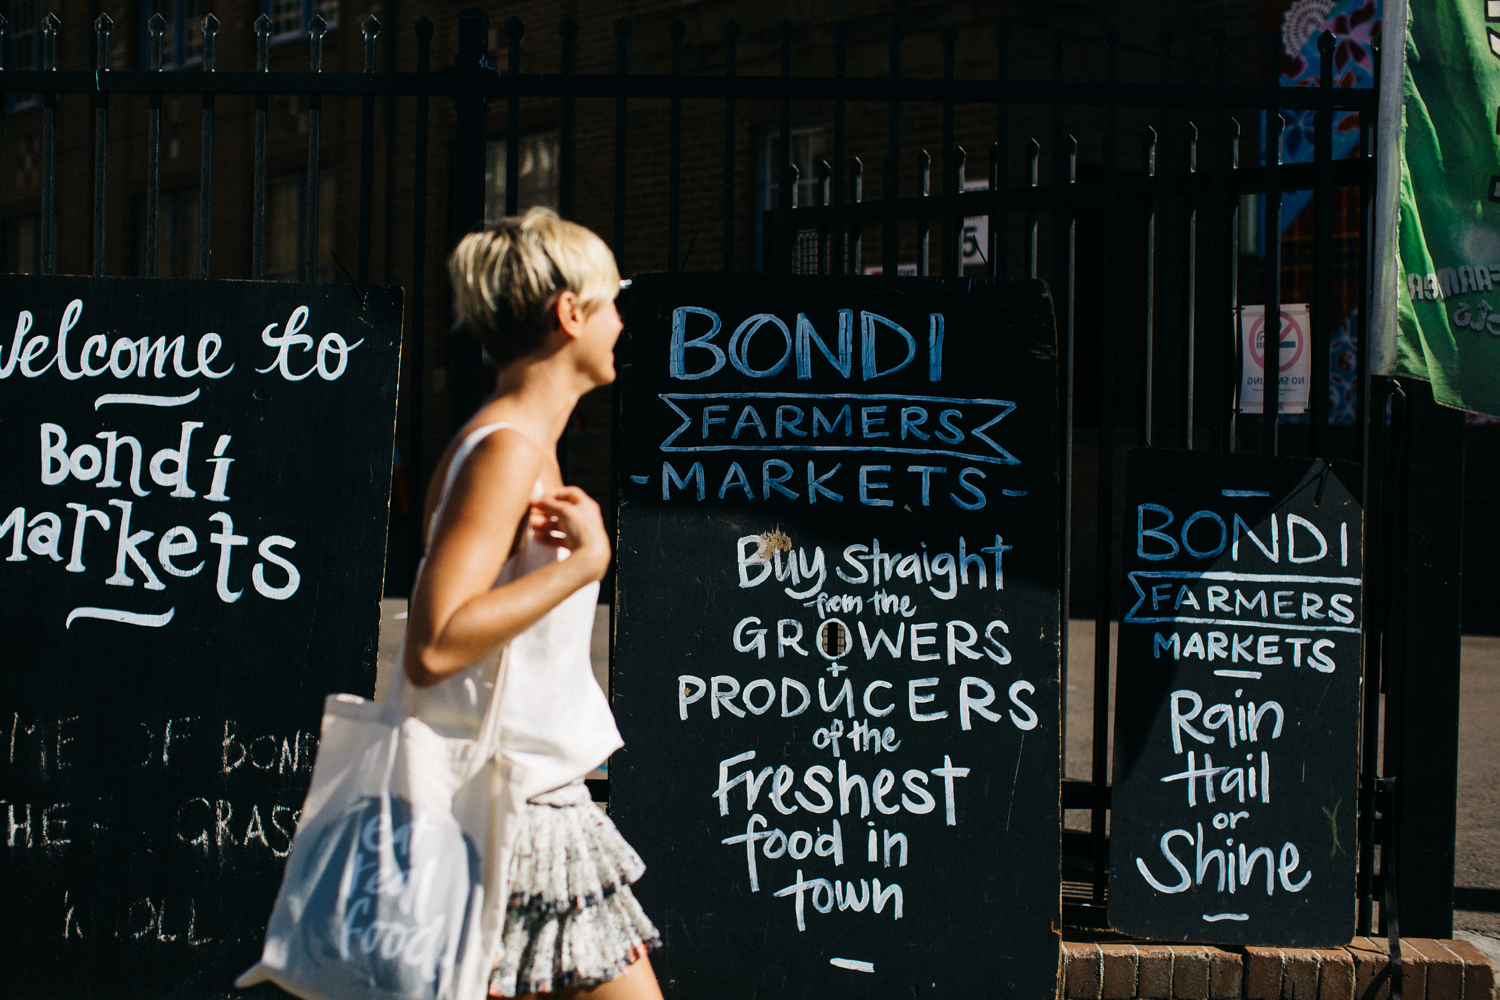 Sydney Travel Guide by Eat Real Food: The East